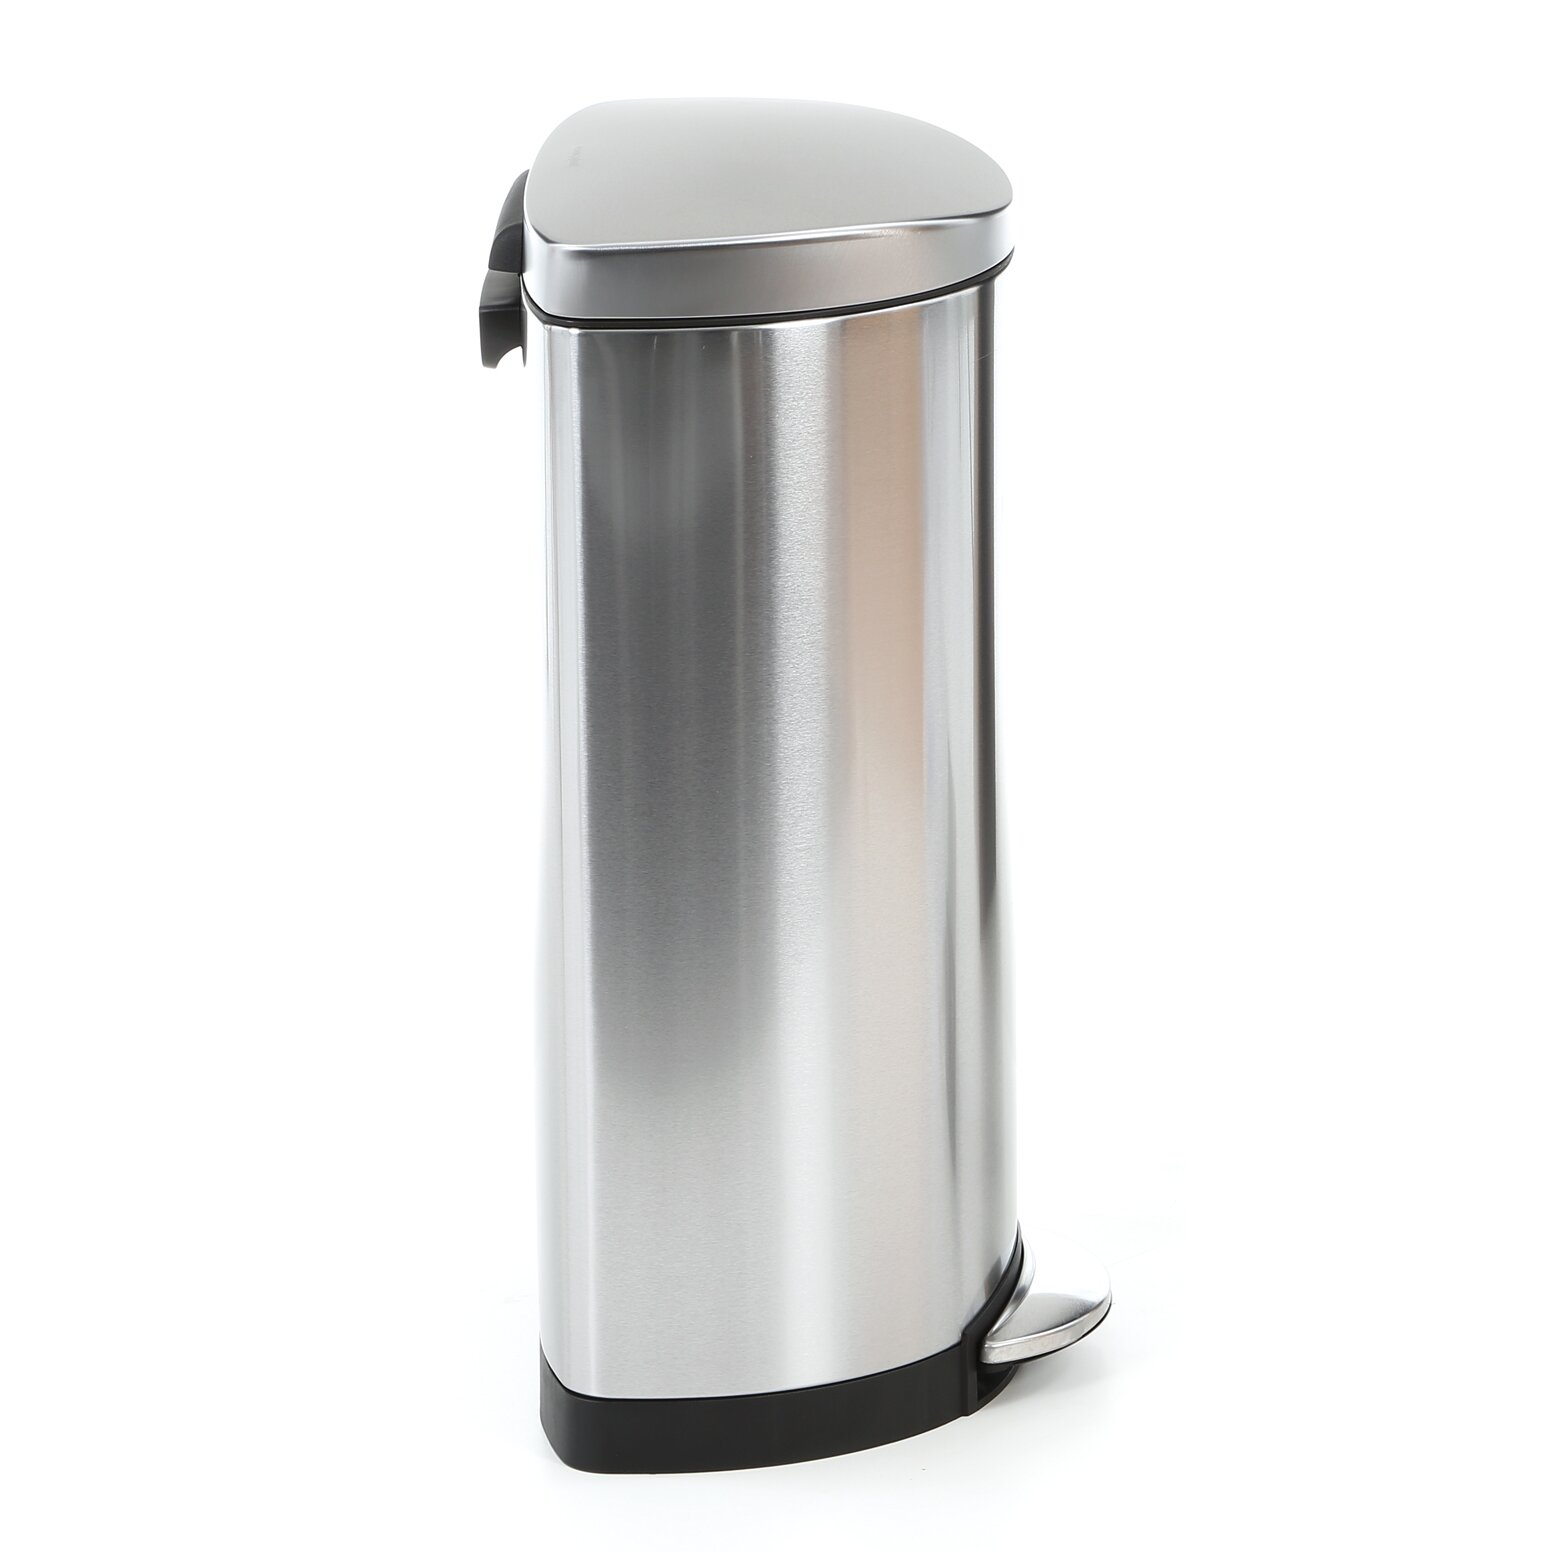 simplehuman 7 9 gallon step on stainless steel trash can reviews. Black Bedroom Furniture Sets. Home Design Ideas